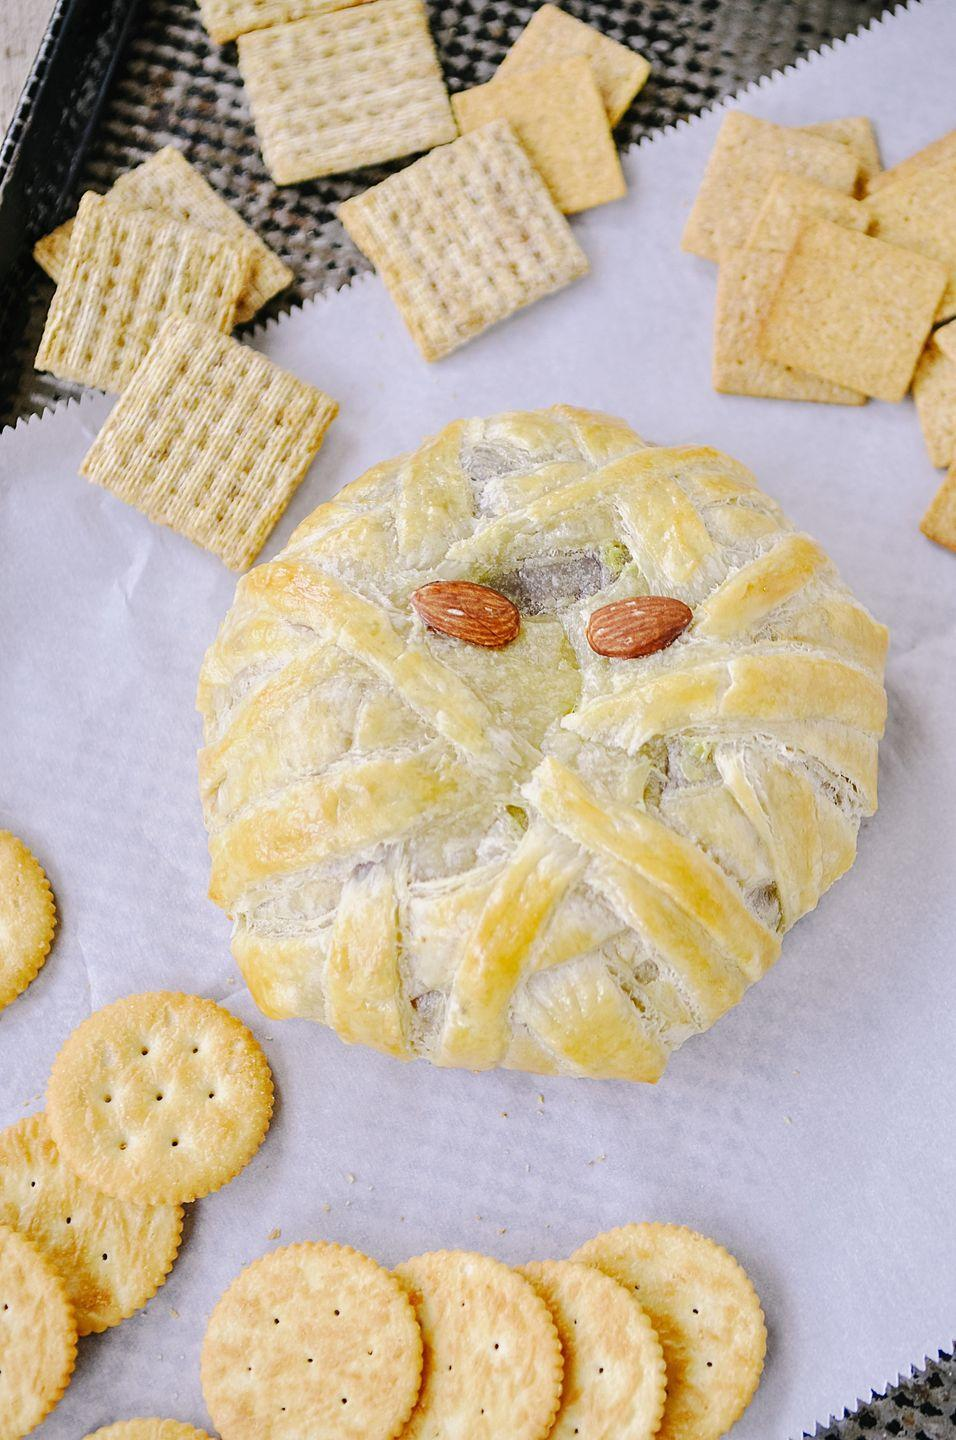 """<p>This adorable-as-can-be mummy isn't a bit scary because it only takes a few minutes to whip it up with puff pastry. </p><p><a class=""""link rapid-noclick-resp"""" href=""""https://www.yourhomebasedmom.com/mummy-wrapped-brie-and-halloween-dinner-party/"""" rel=""""nofollow noopener"""" target=""""_blank"""" data-ylk=""""slk:GET THE RECIPE"""">GET THE RECIPE</a></p>"""